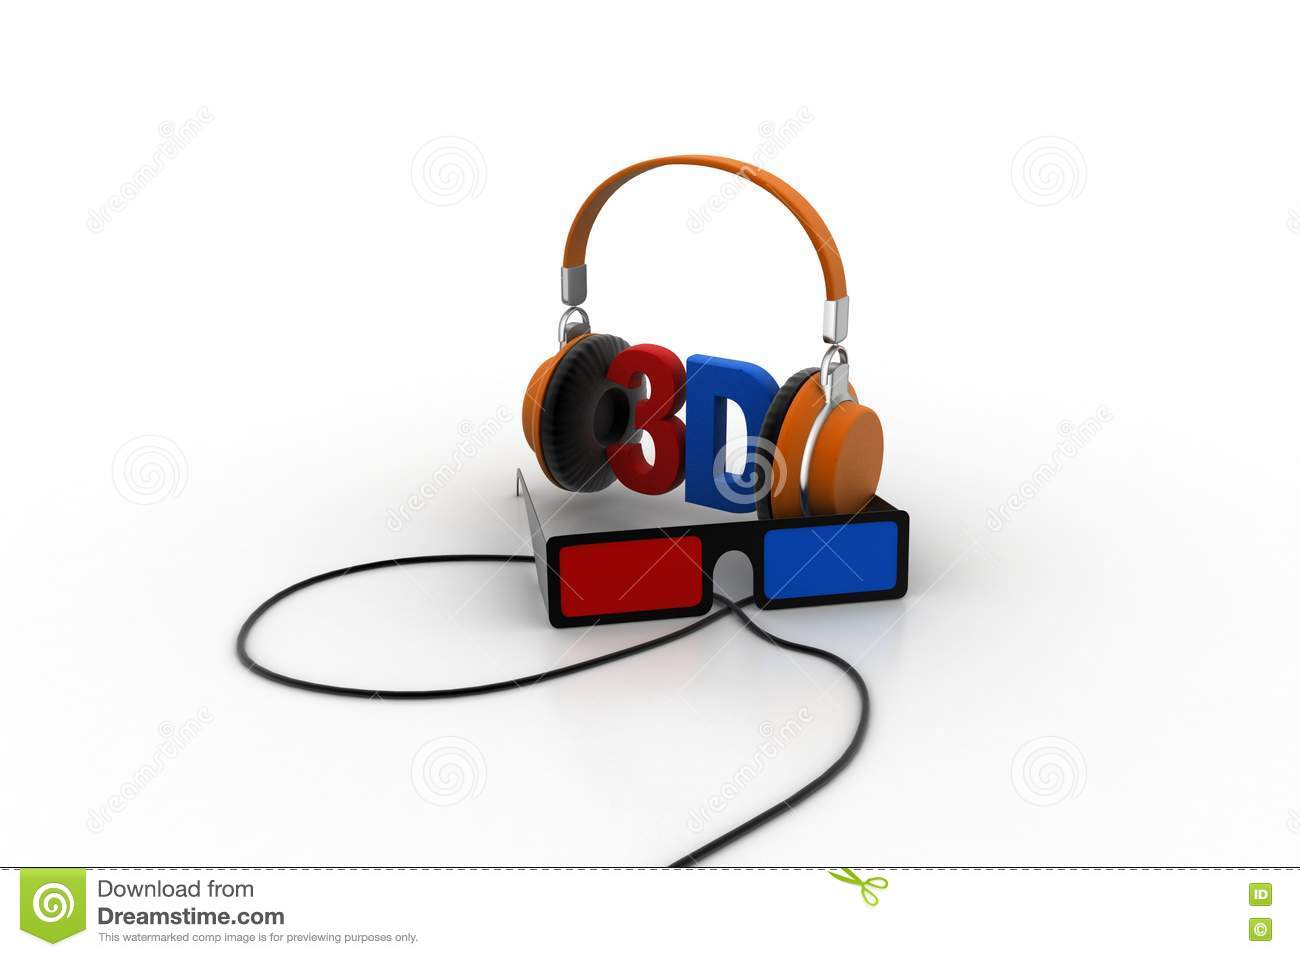 3d songs concept stock illustration  Illustration of image - 75835517